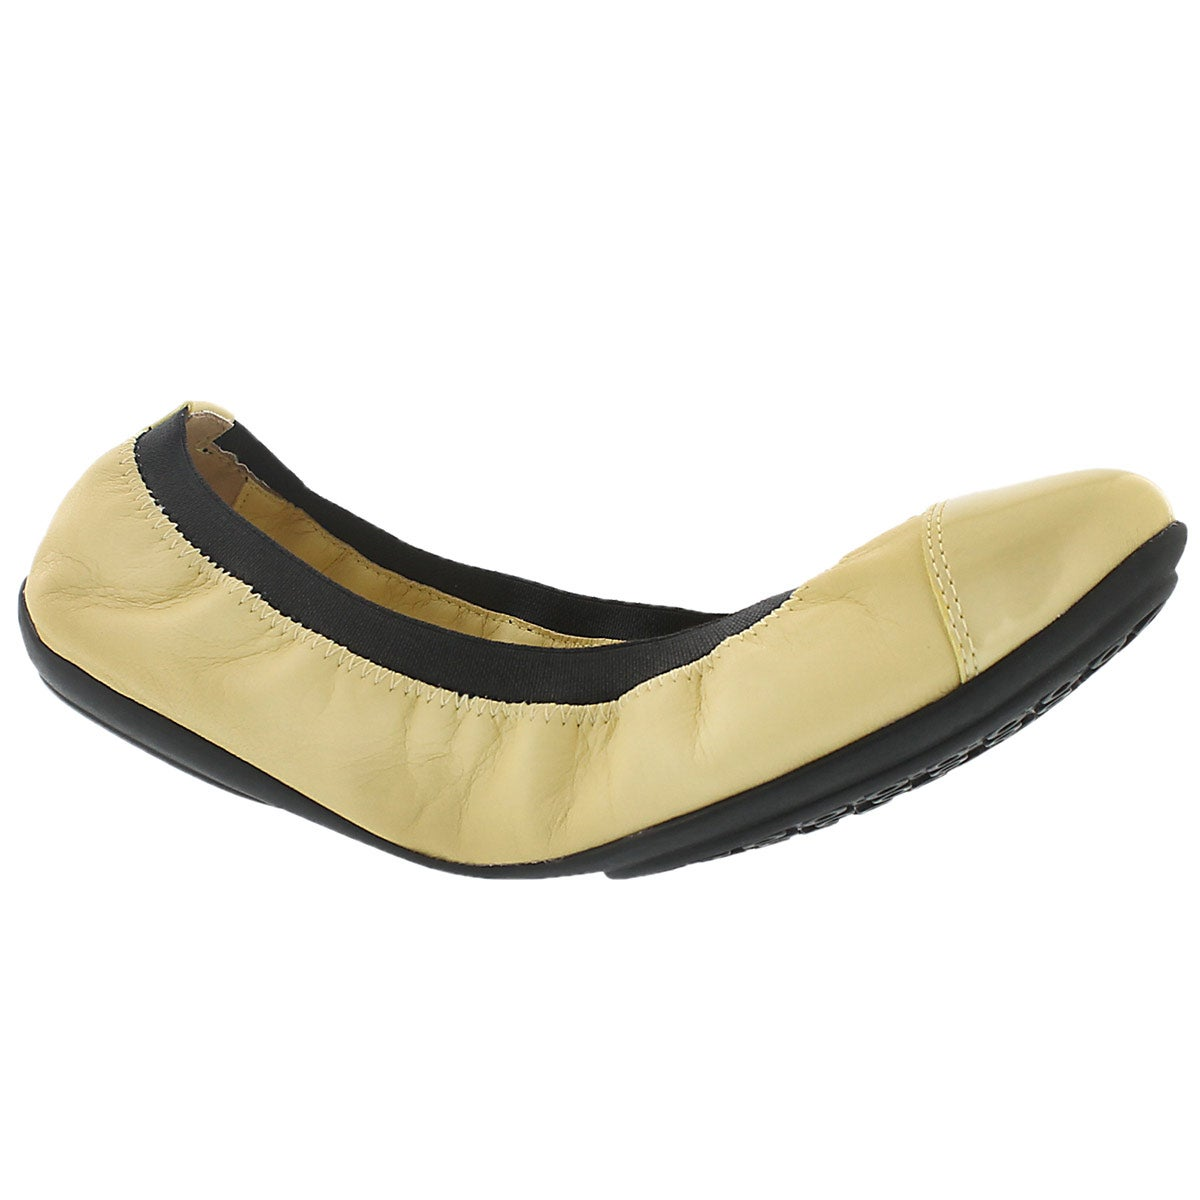 Lds Charlene lt yellow/blk dress flat